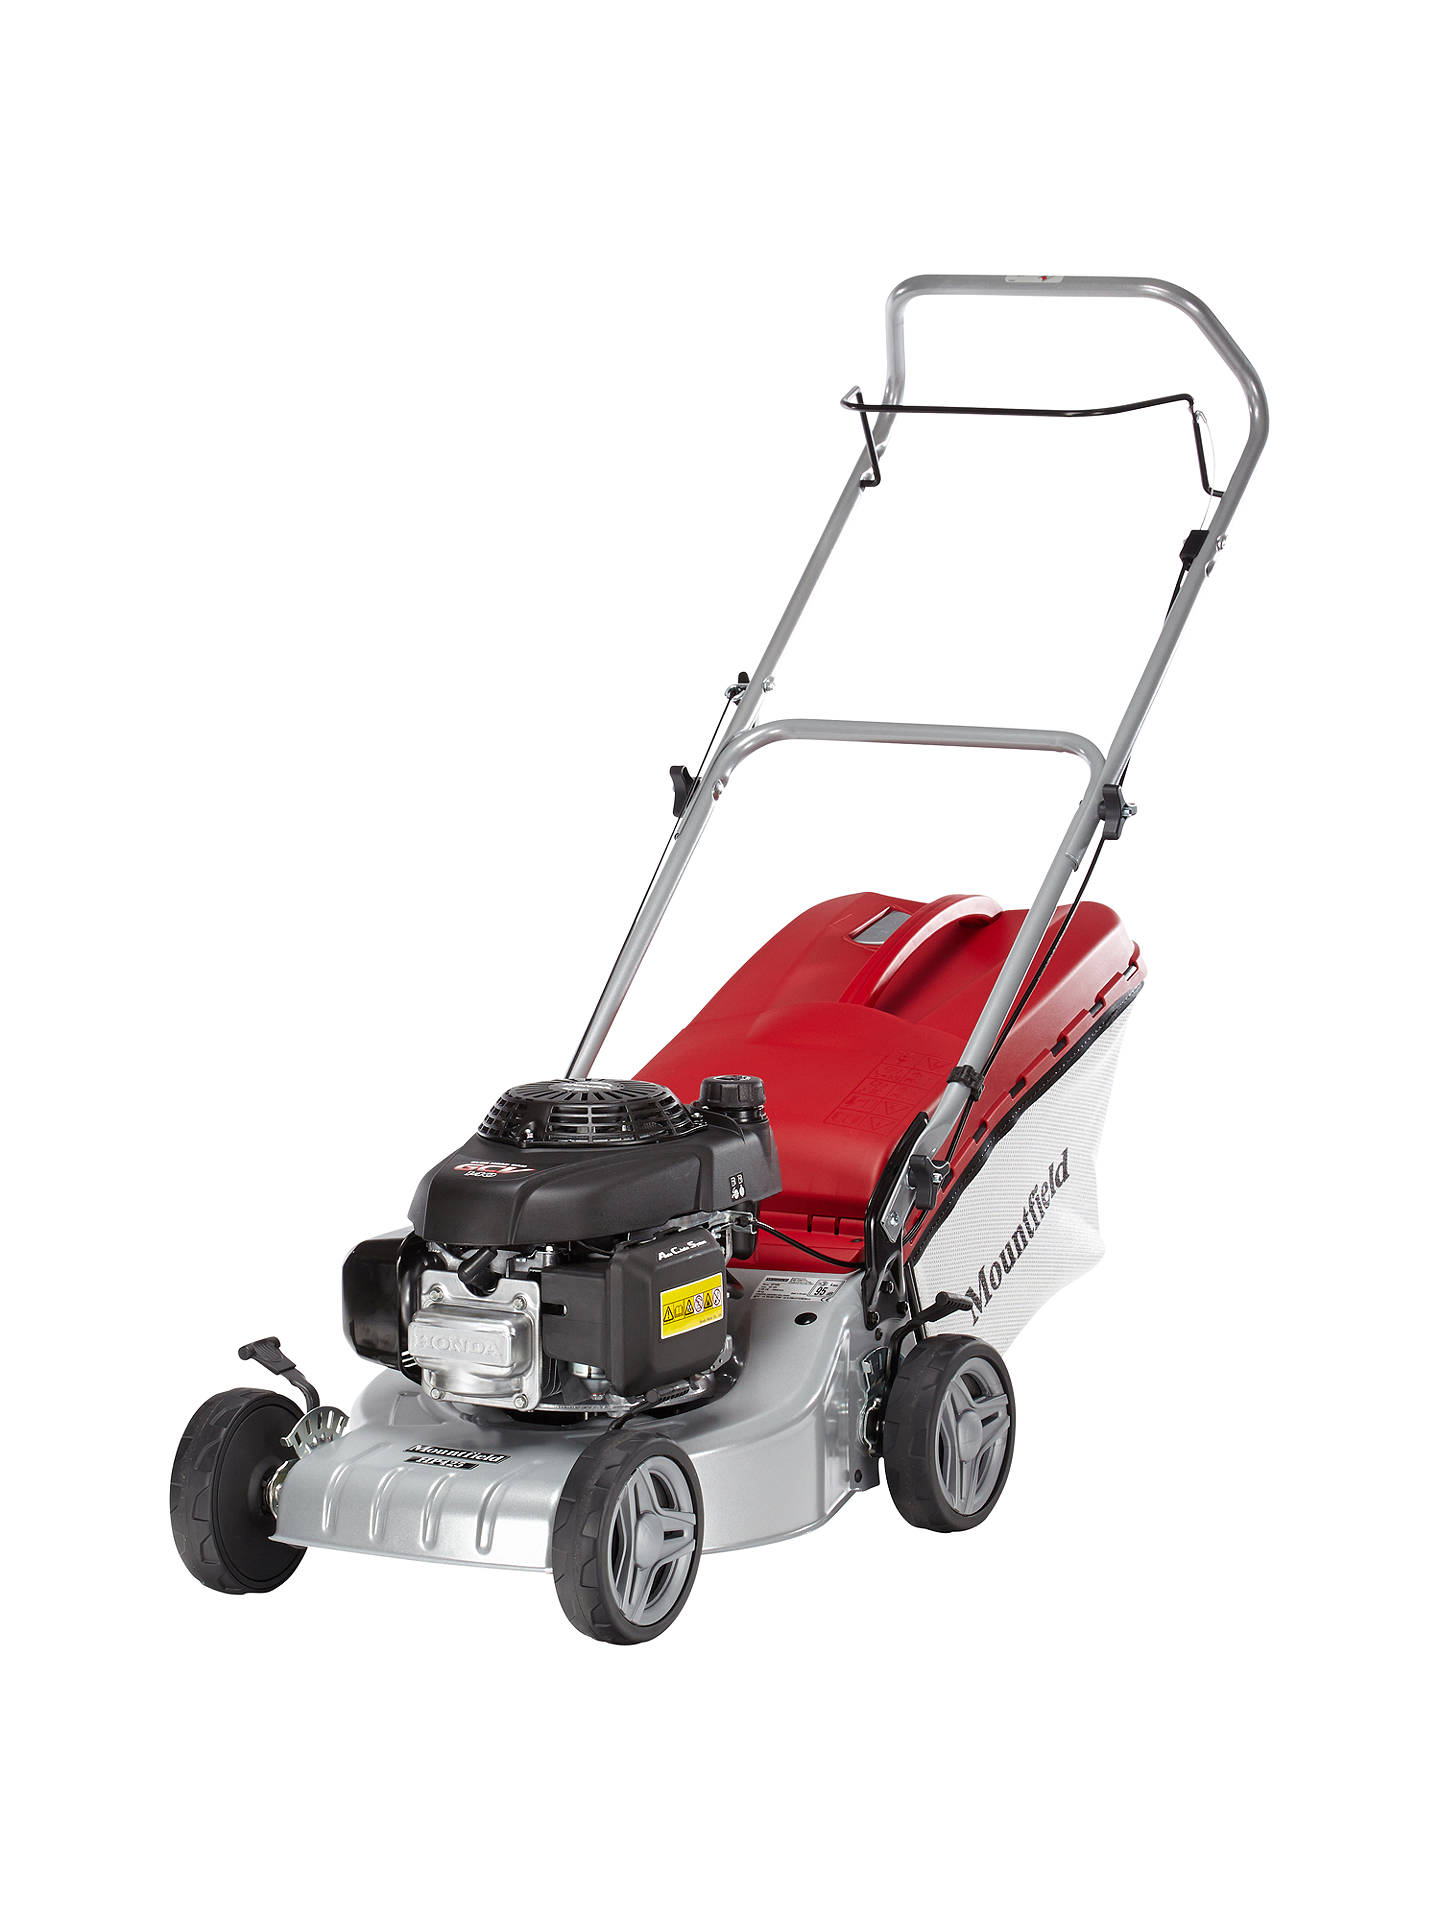 BuyMountfield HP425 41cm Hand-Propelled Petrol Lawnmower Online at johnlewis.com